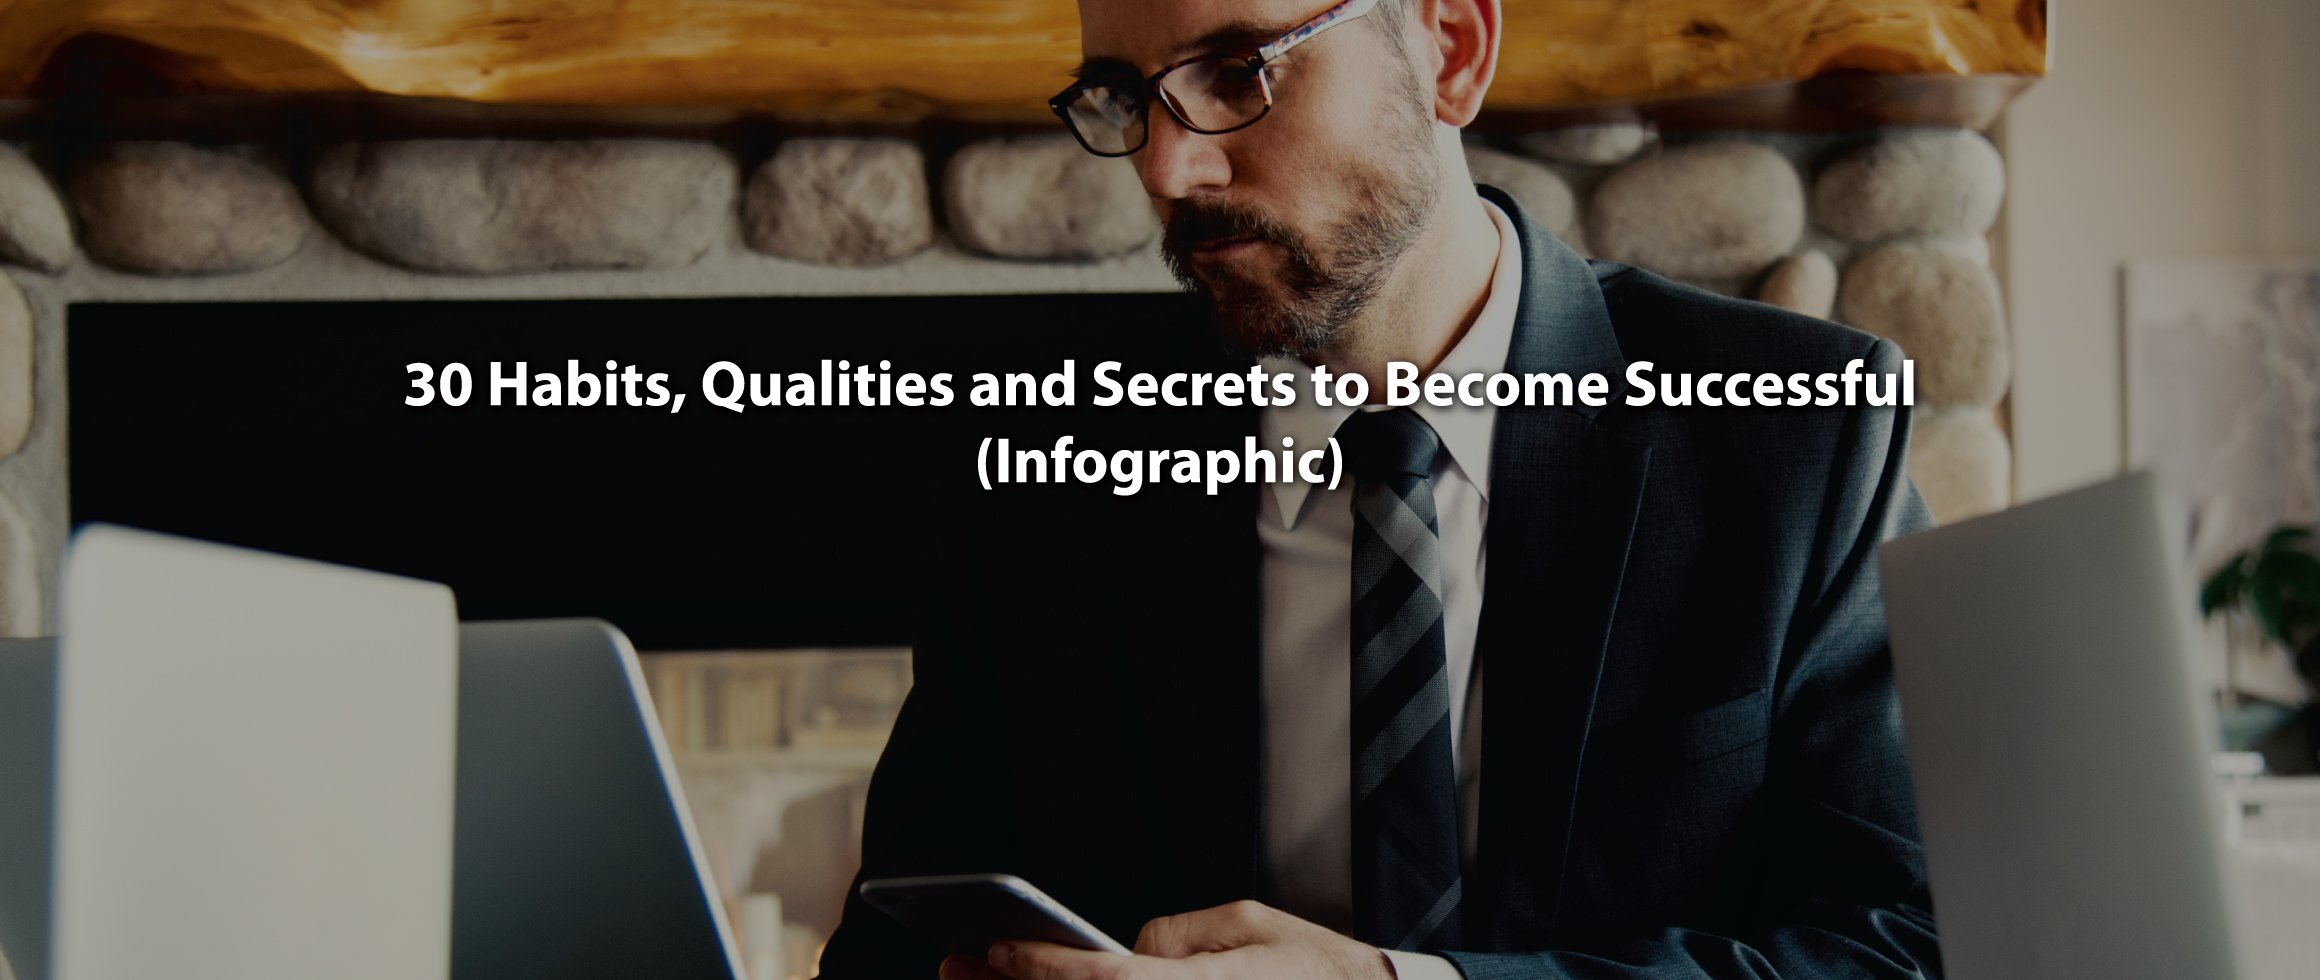 30 Habits Qualities and Secrets to Become Successful